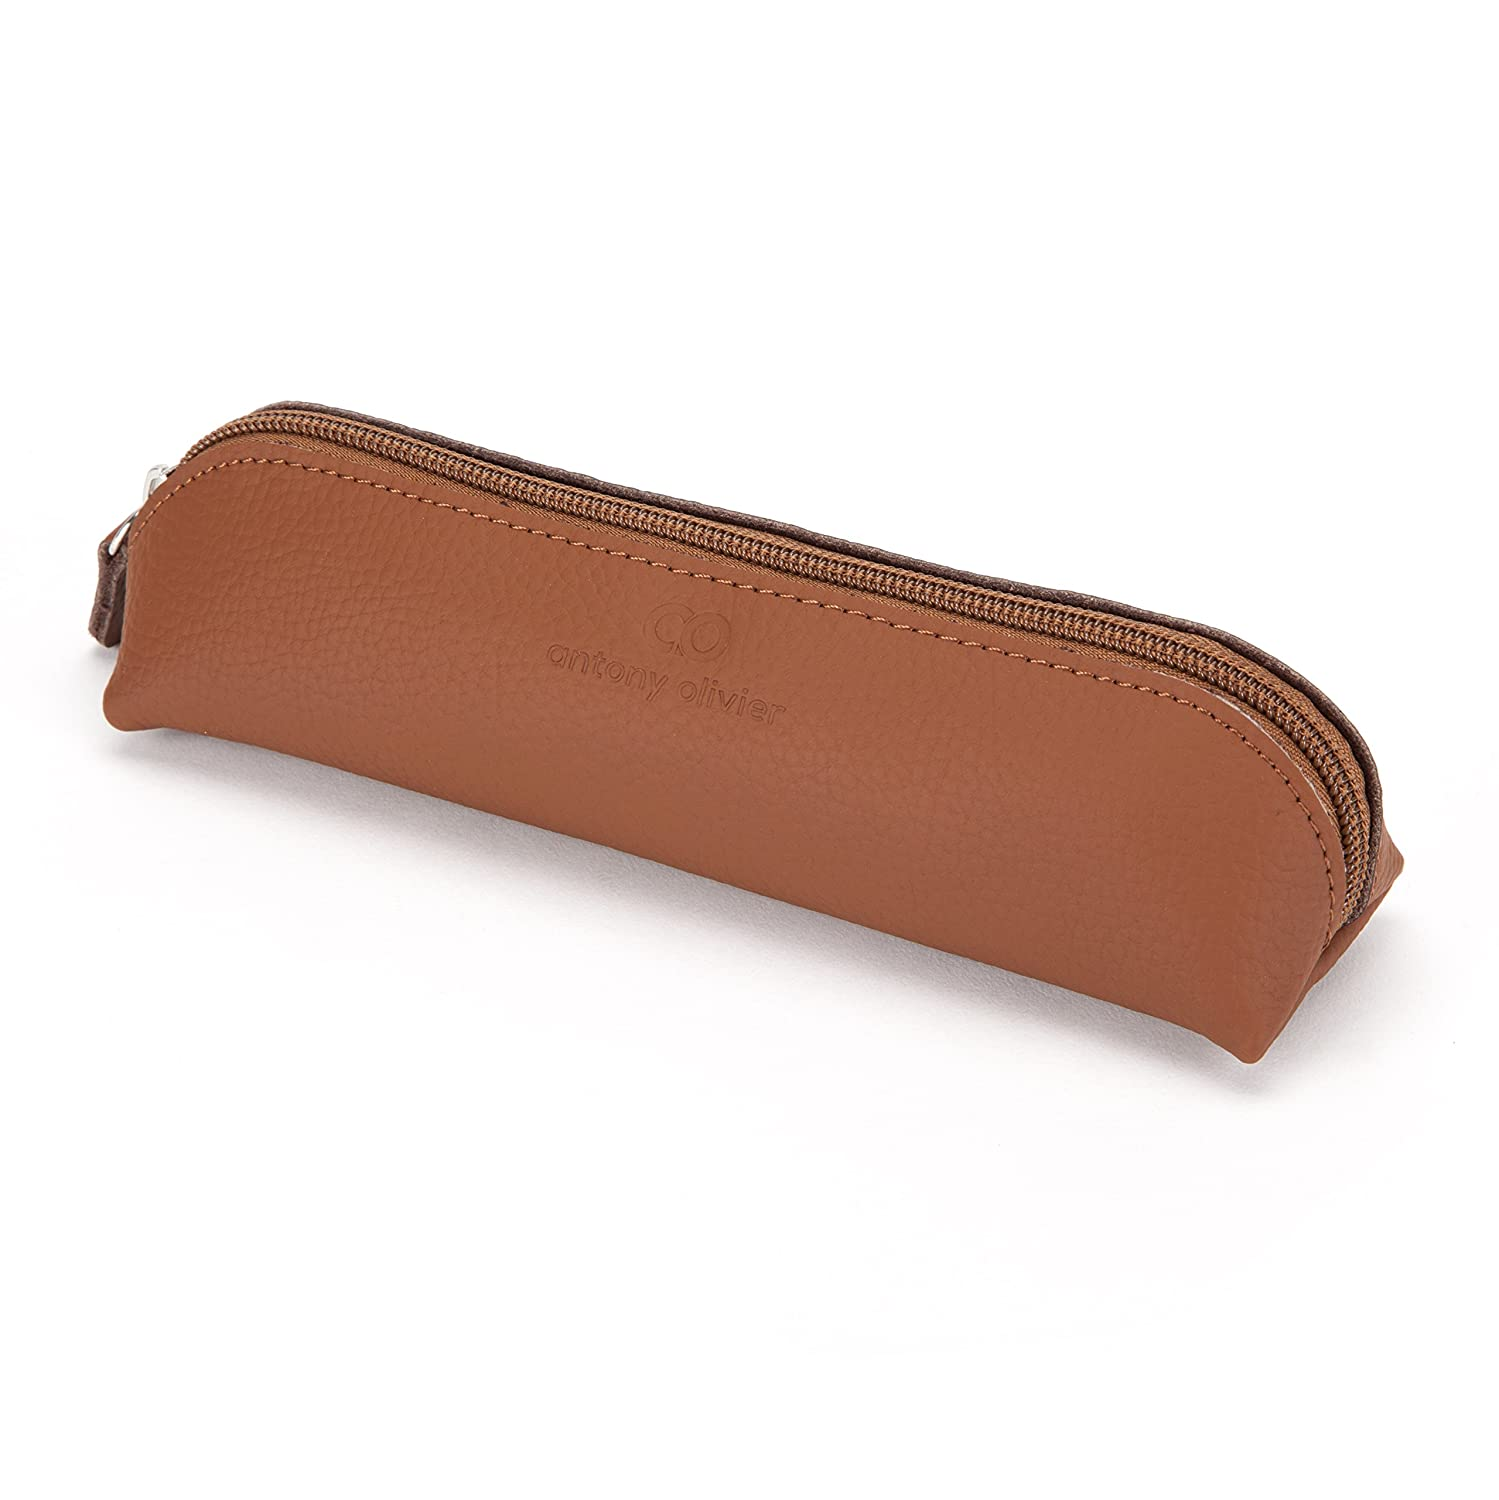 Antony Olivier #1 Best Quality Brown Real Leather Zippered Pencil Case Pouch for Men, Women, Teenagers, Students & Professionals, for Stationery, Art Utensils, Makeup, Packaged in a Kraft Gift Box Antony Scott Ltd